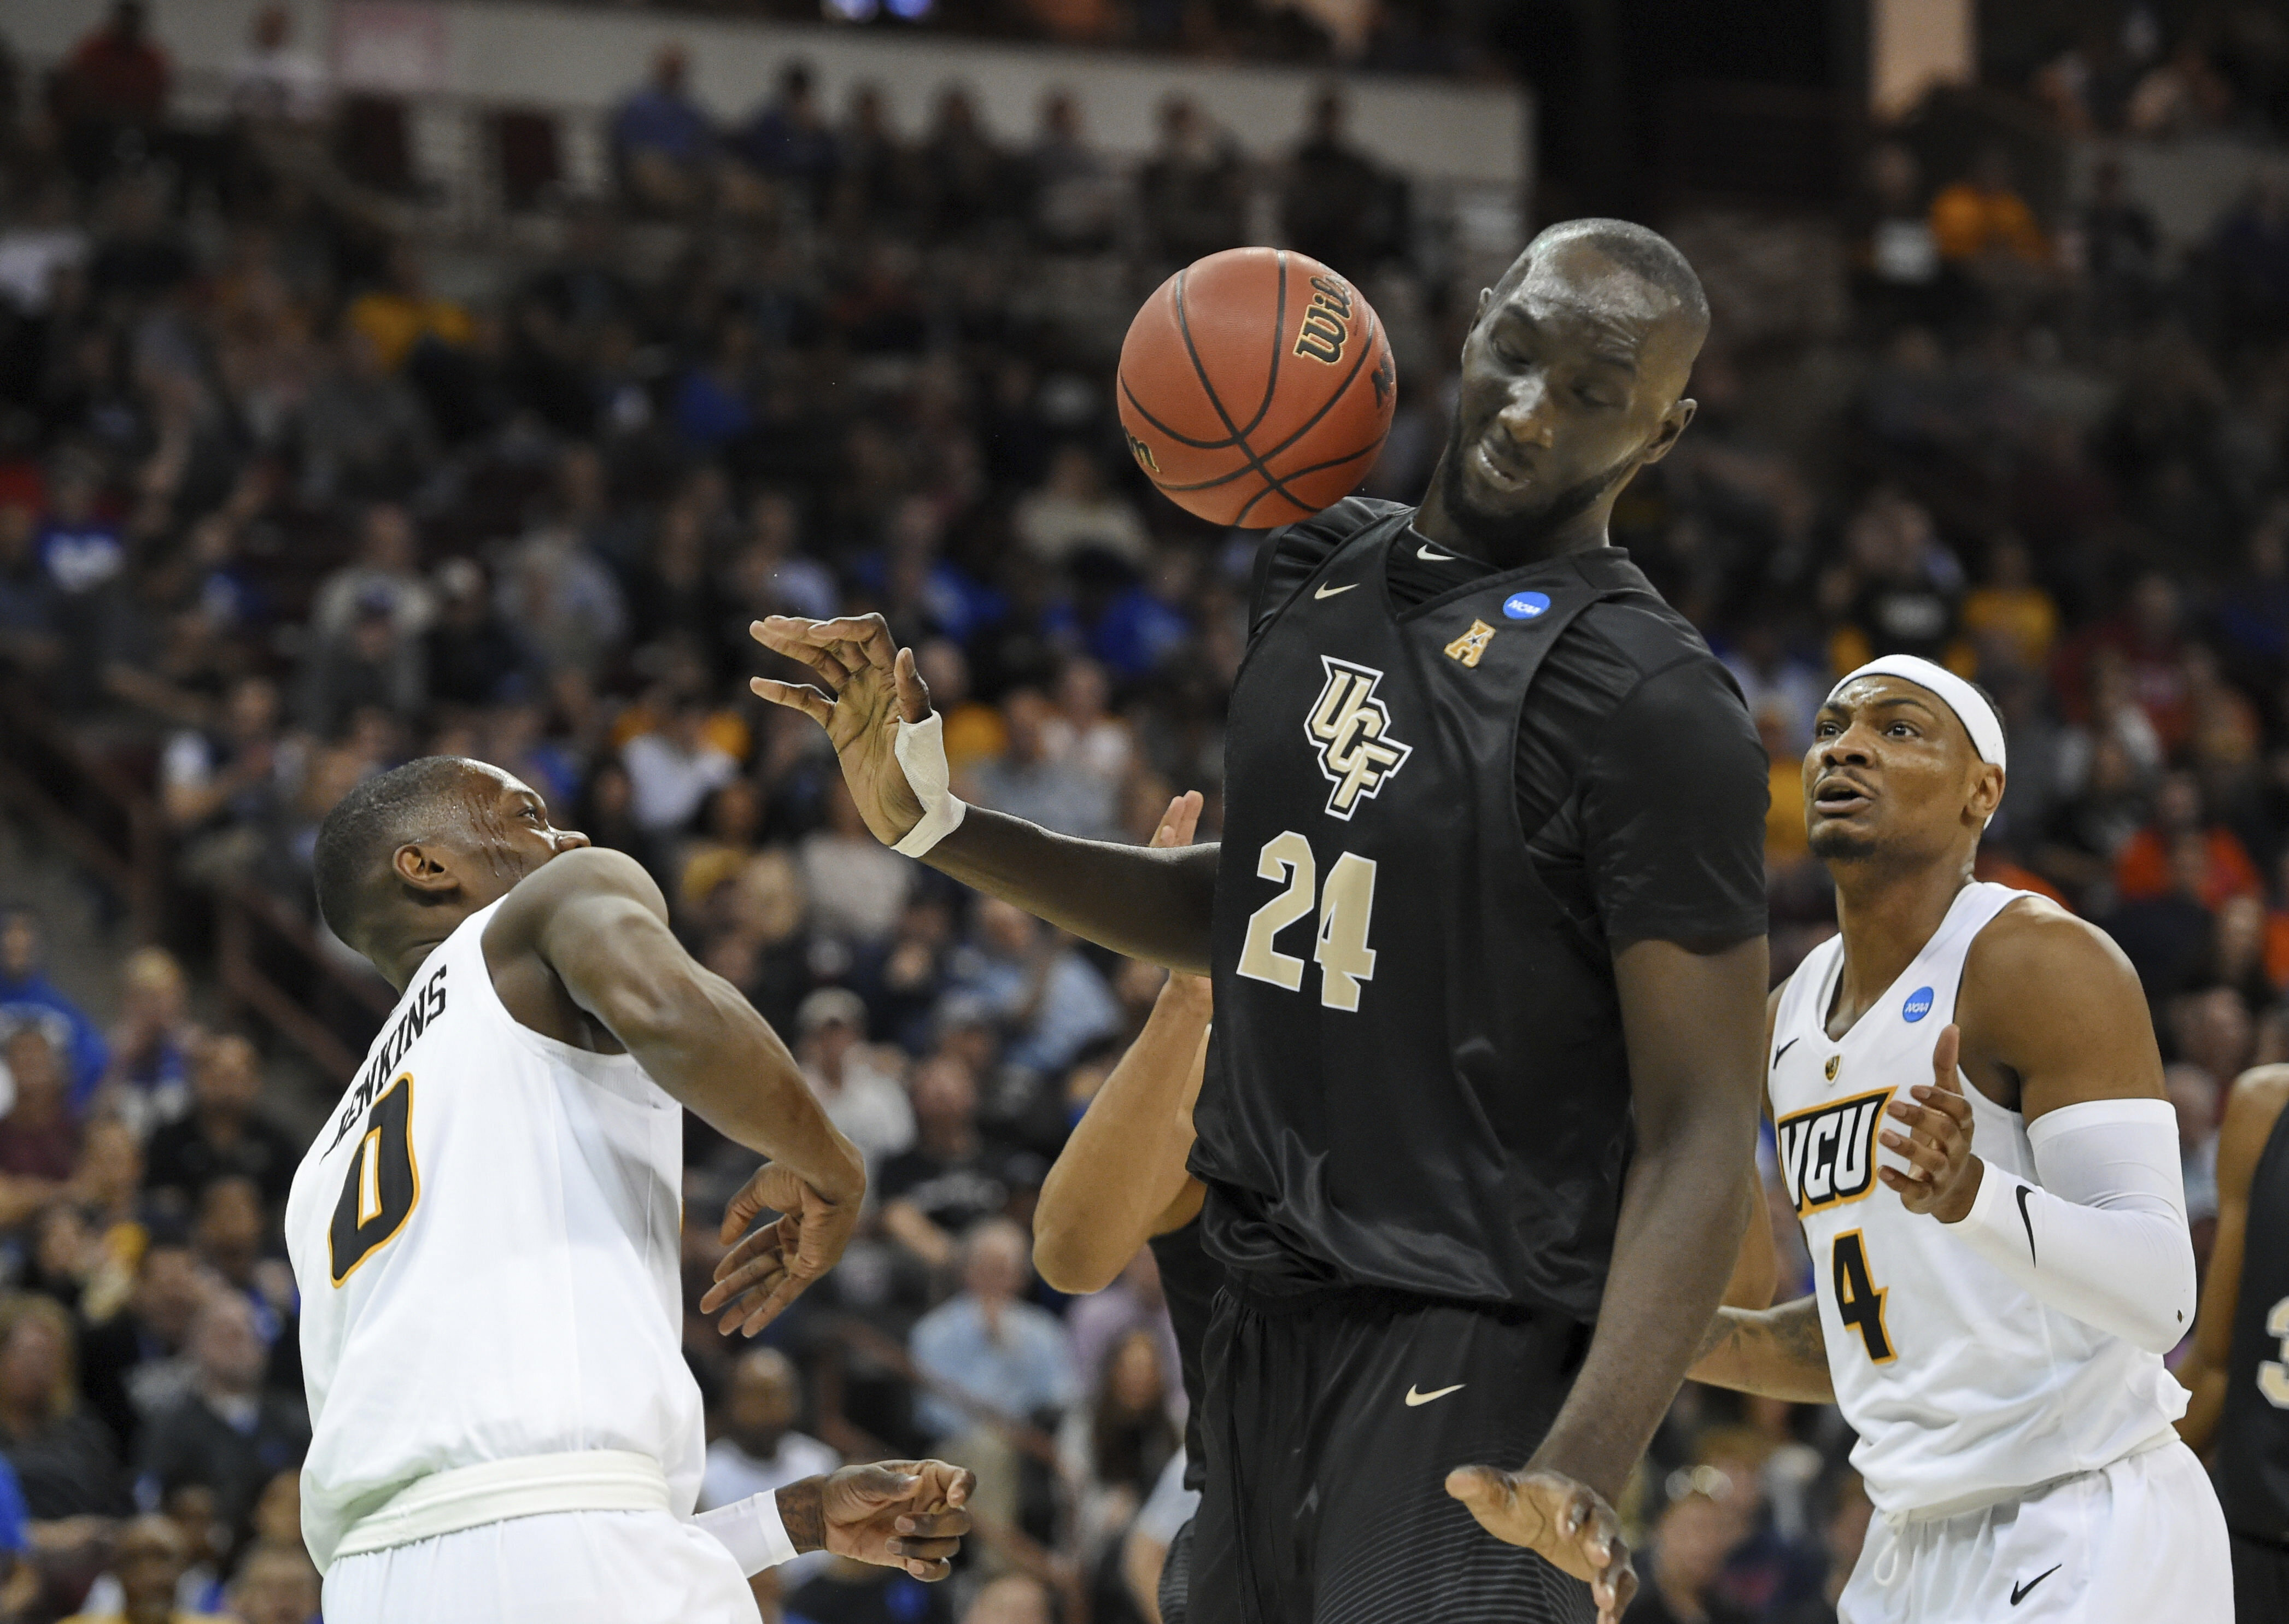 eff14cca11d NCAA Latest: Fall leads UCF into matchup with Duke | The Sky 973